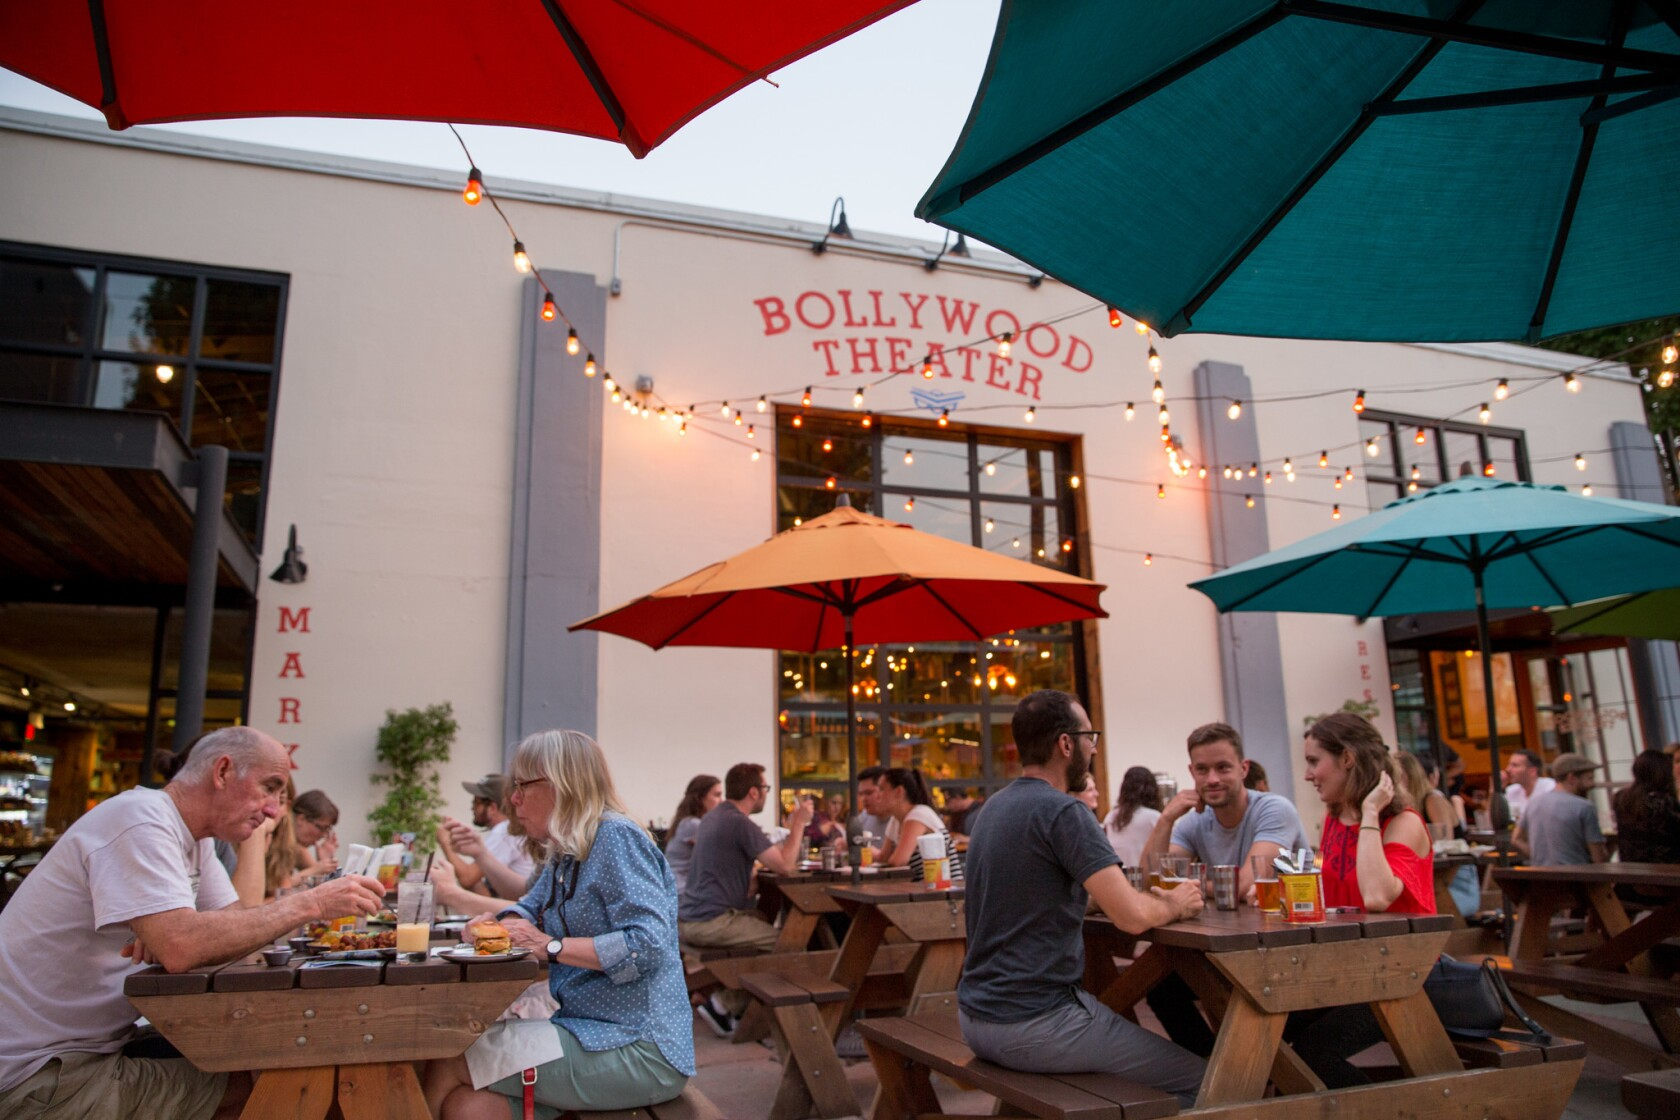 In Portland, ignore the mizzle (mist and drizzle) and enjoy dining outside, Pacific Northwest style